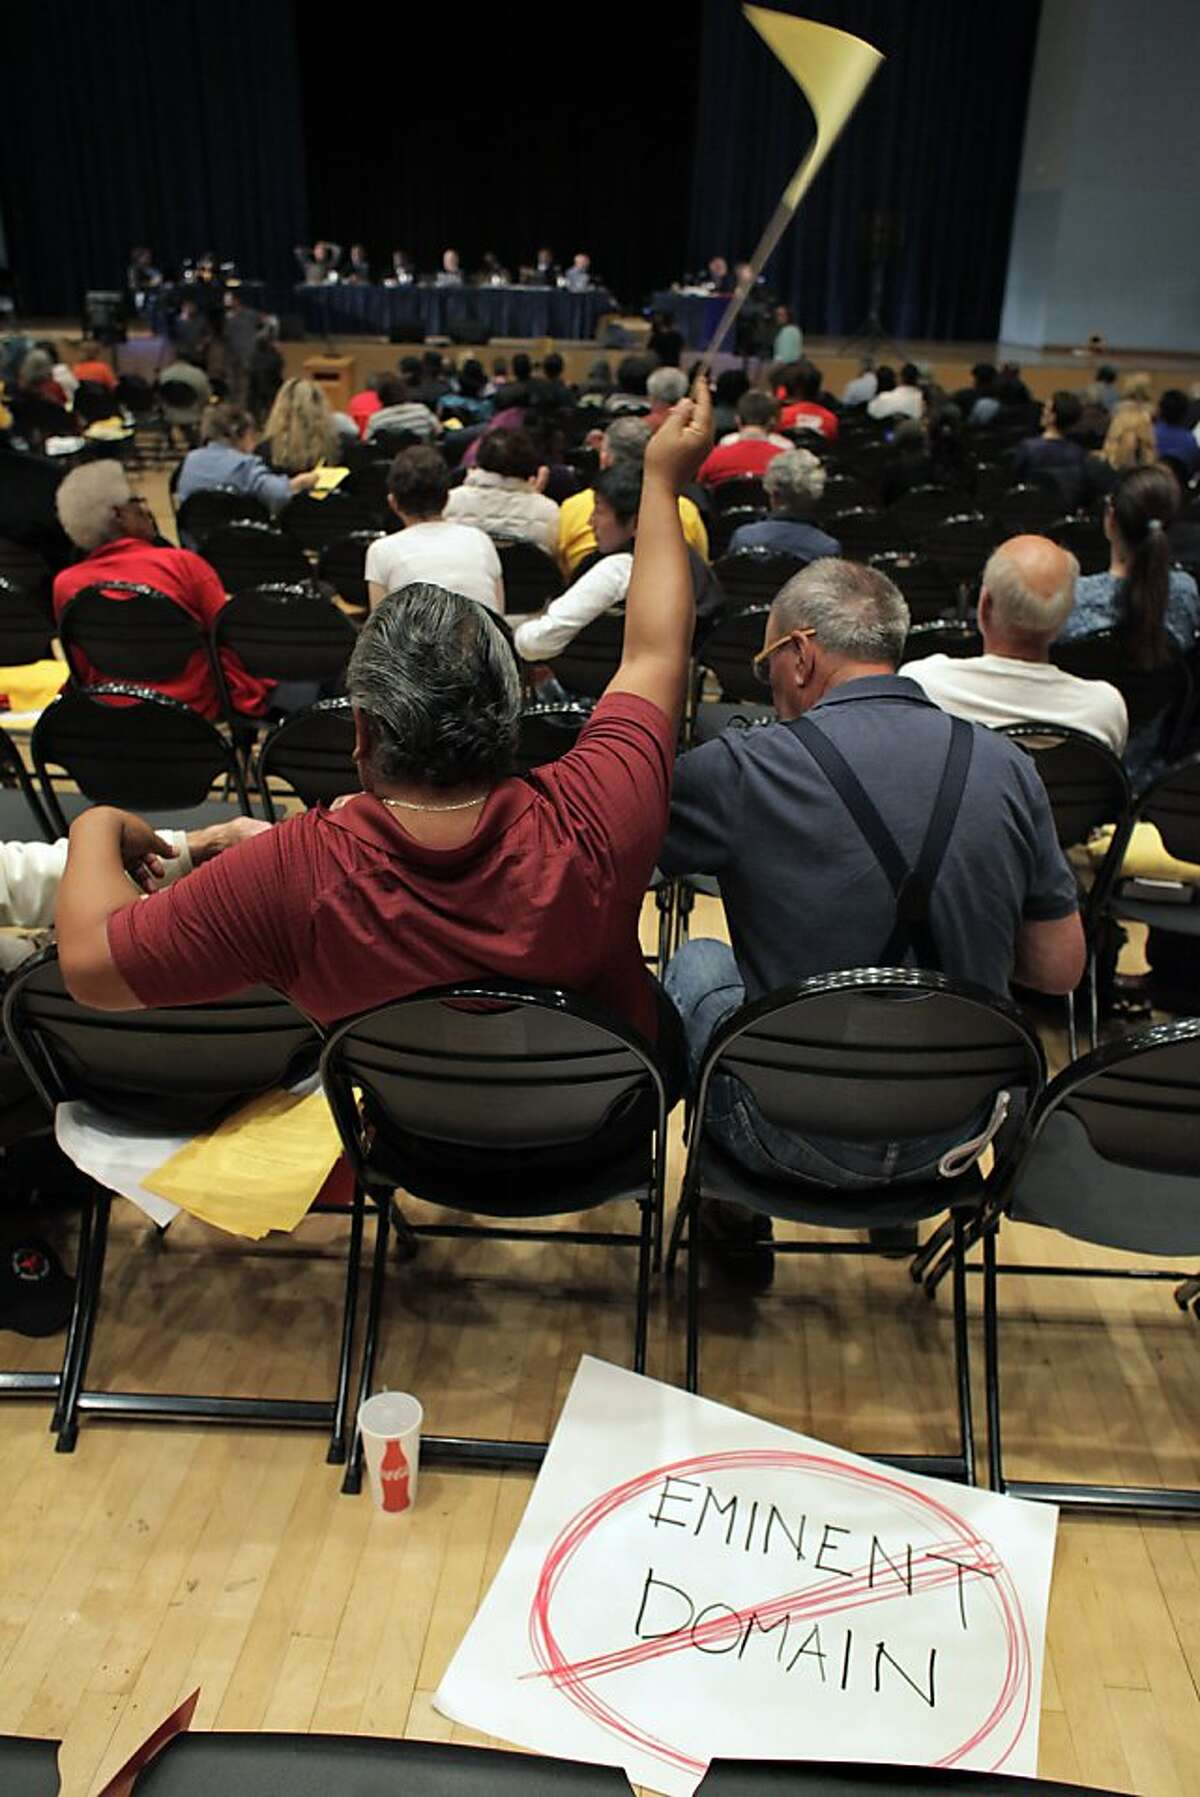 A supporter of the eminent domain measure waves a flag as a sign urging rejection by the council lies on the floor.